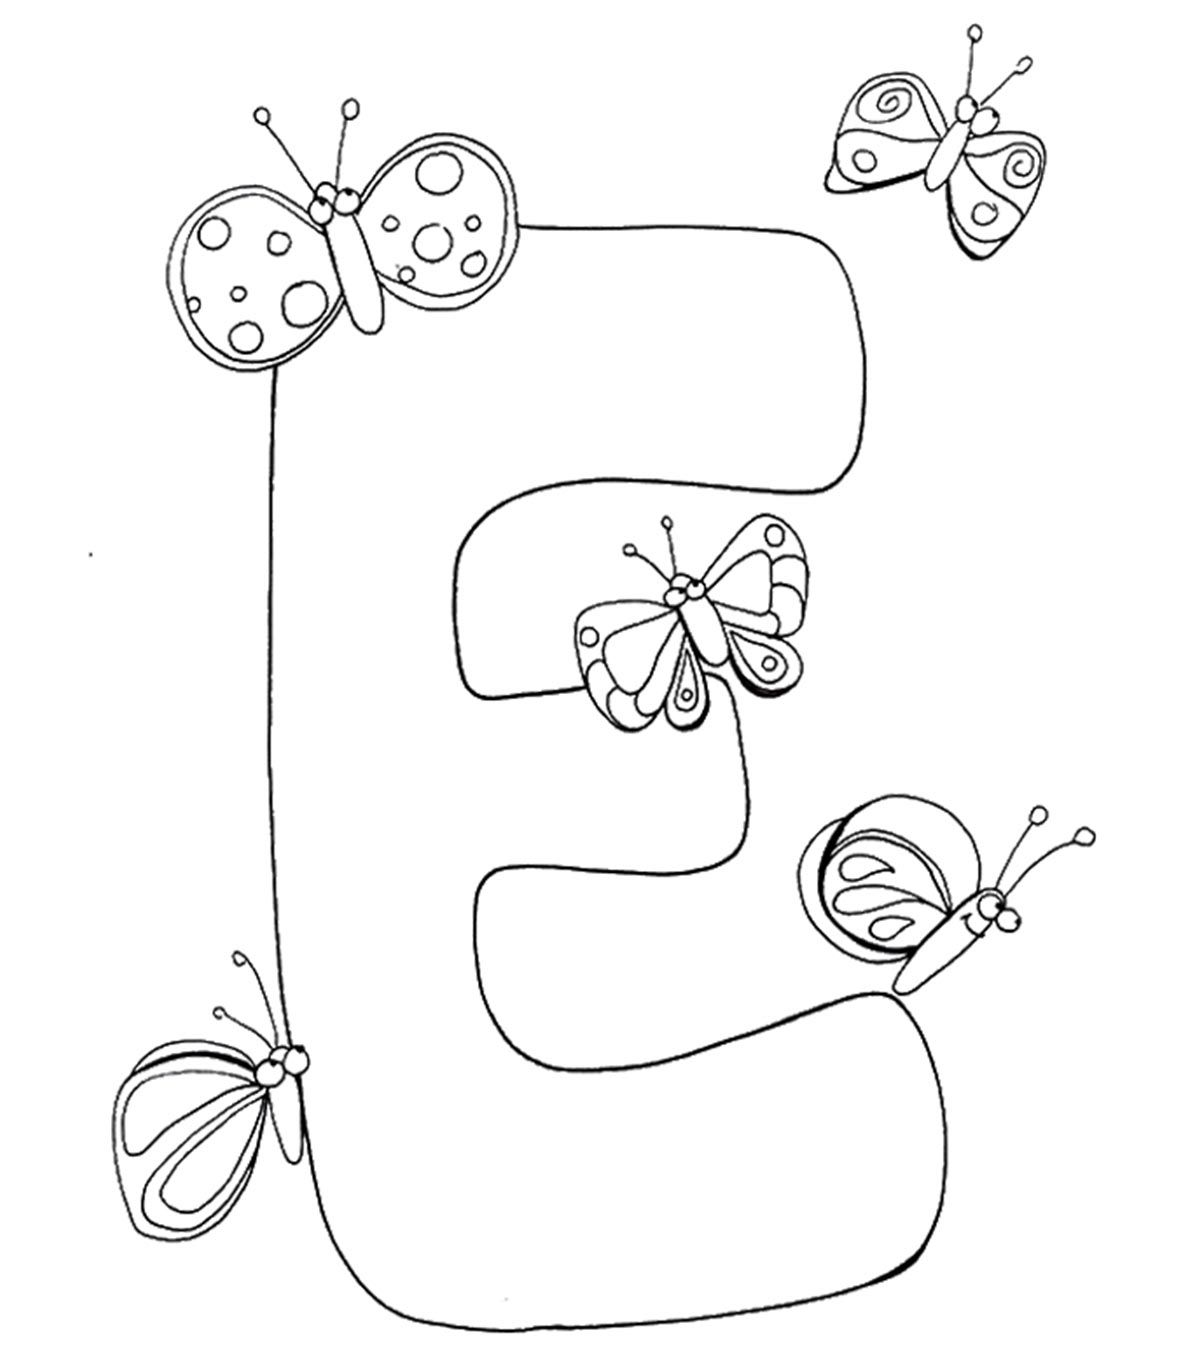 1200x1350 Top 10 Free Printable Letter E Coloring Pages Online